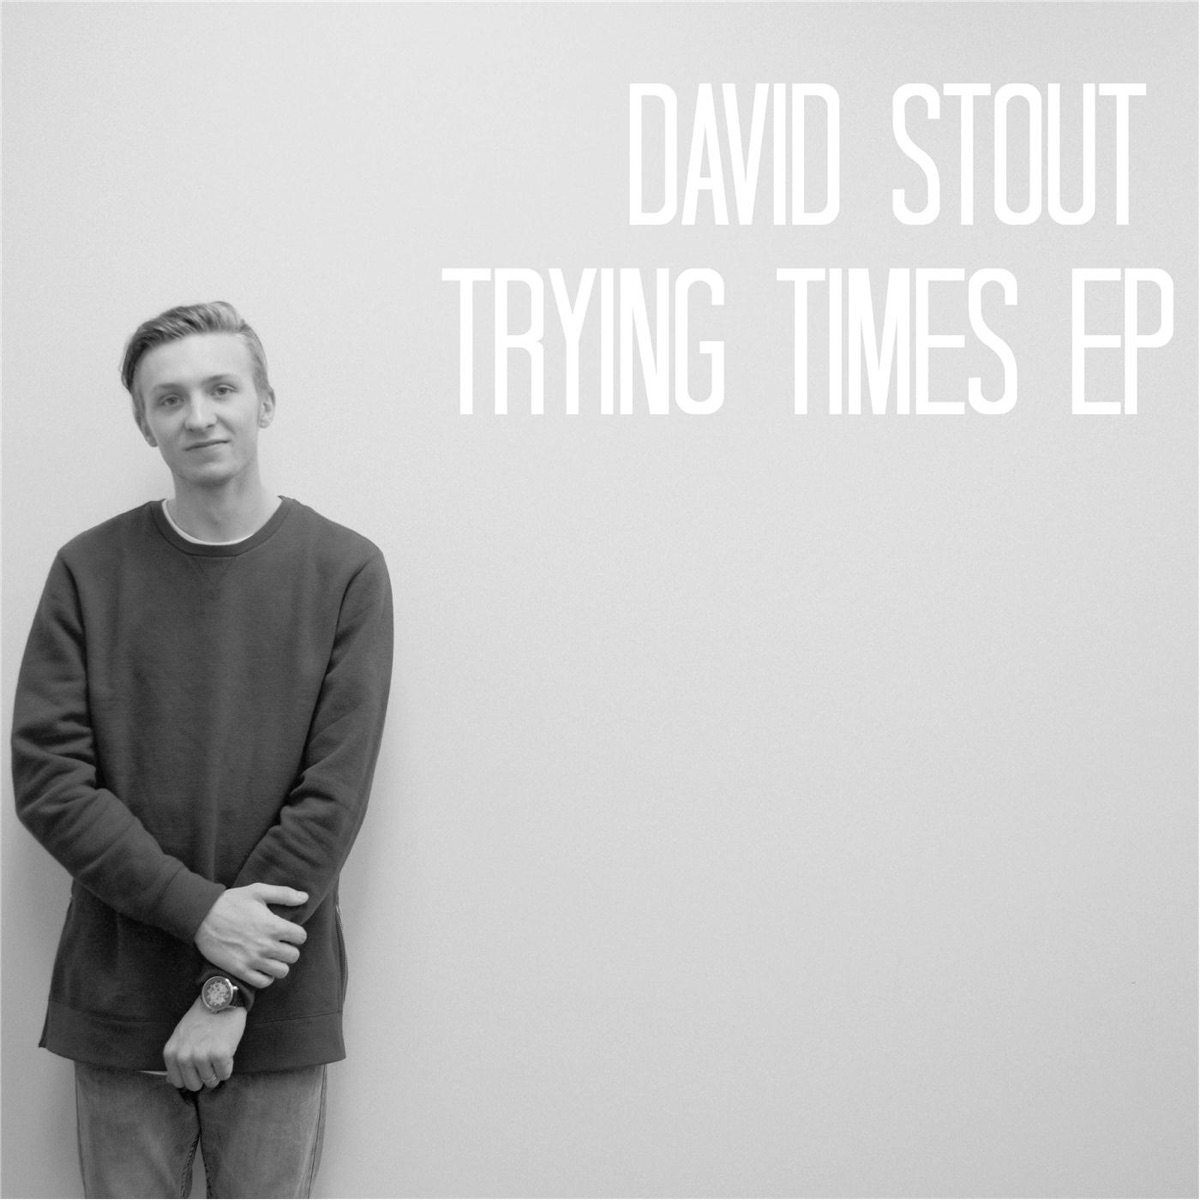 Trying Times - EP David Stout CD cover